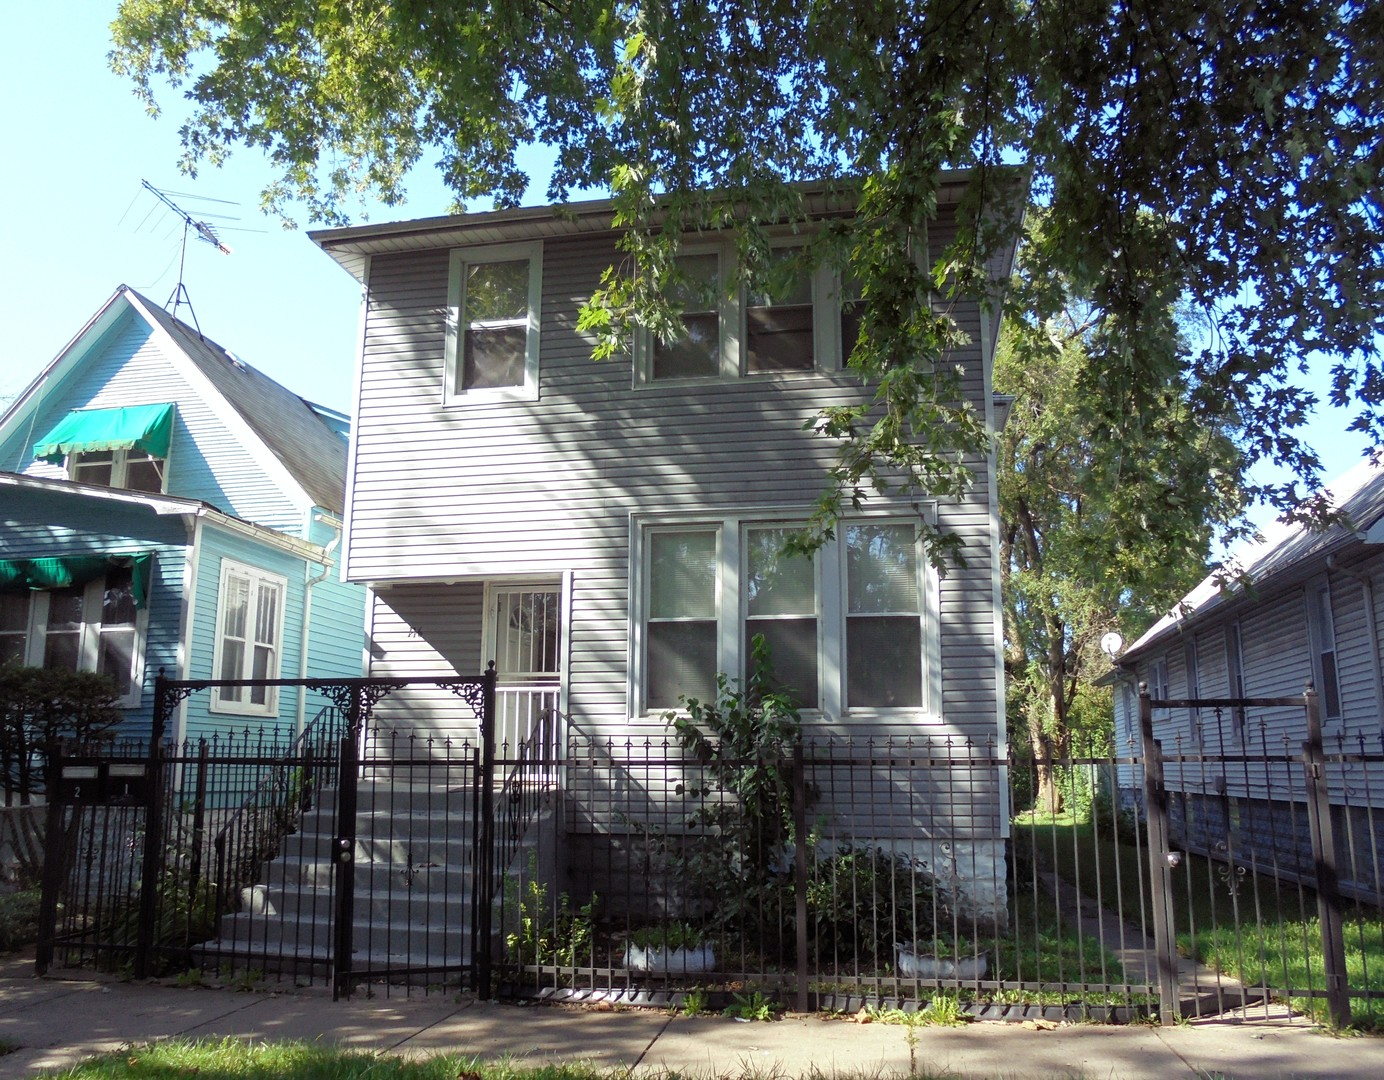 Photo of 116 110th Street Chicago IL 60628